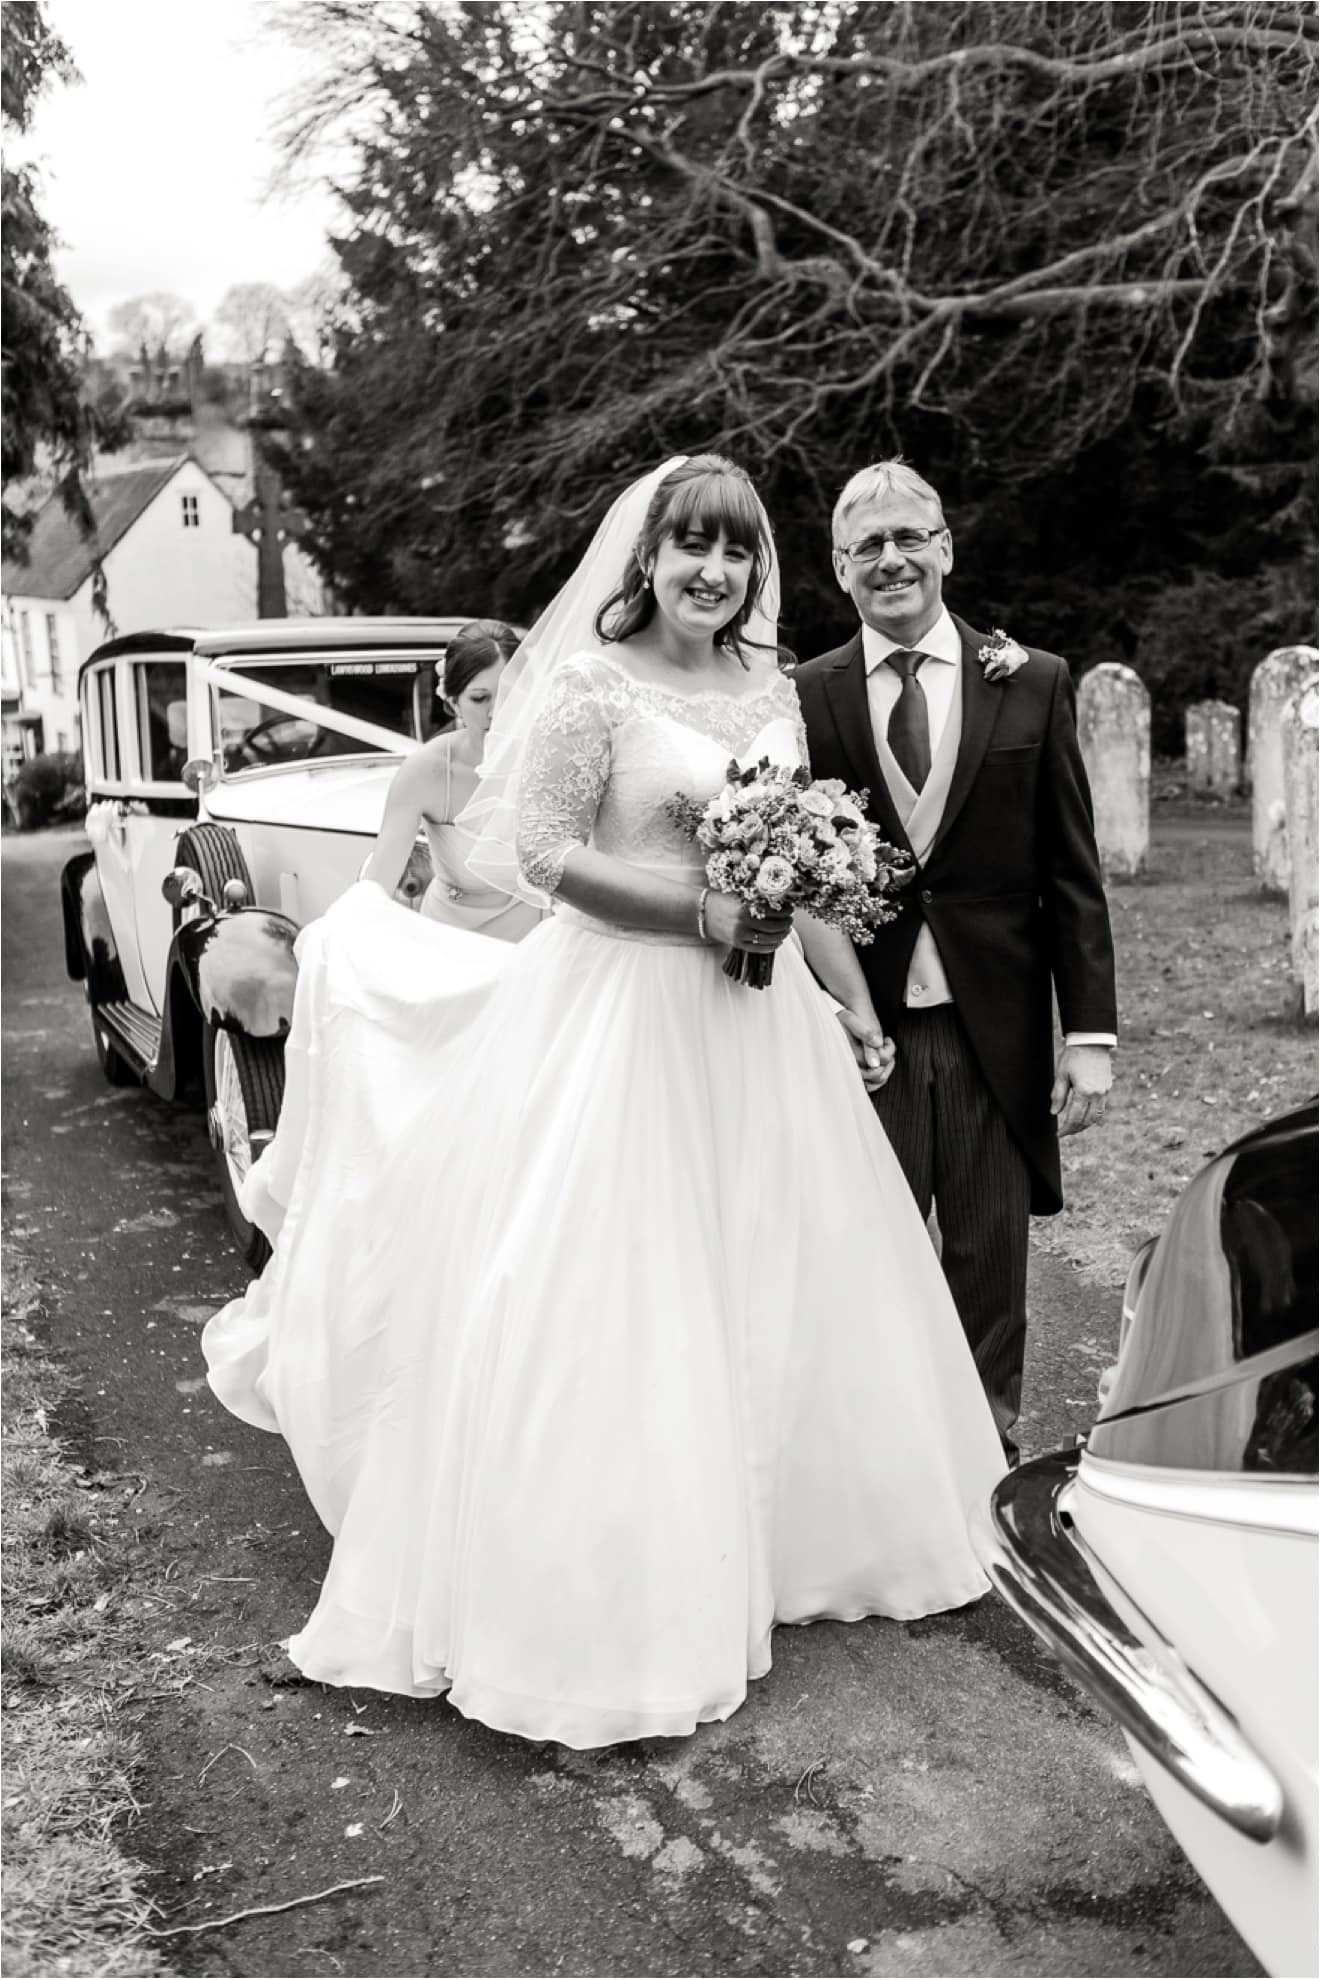 wedding-at-hambledon-vineyard-eddie-judd-photographer0023